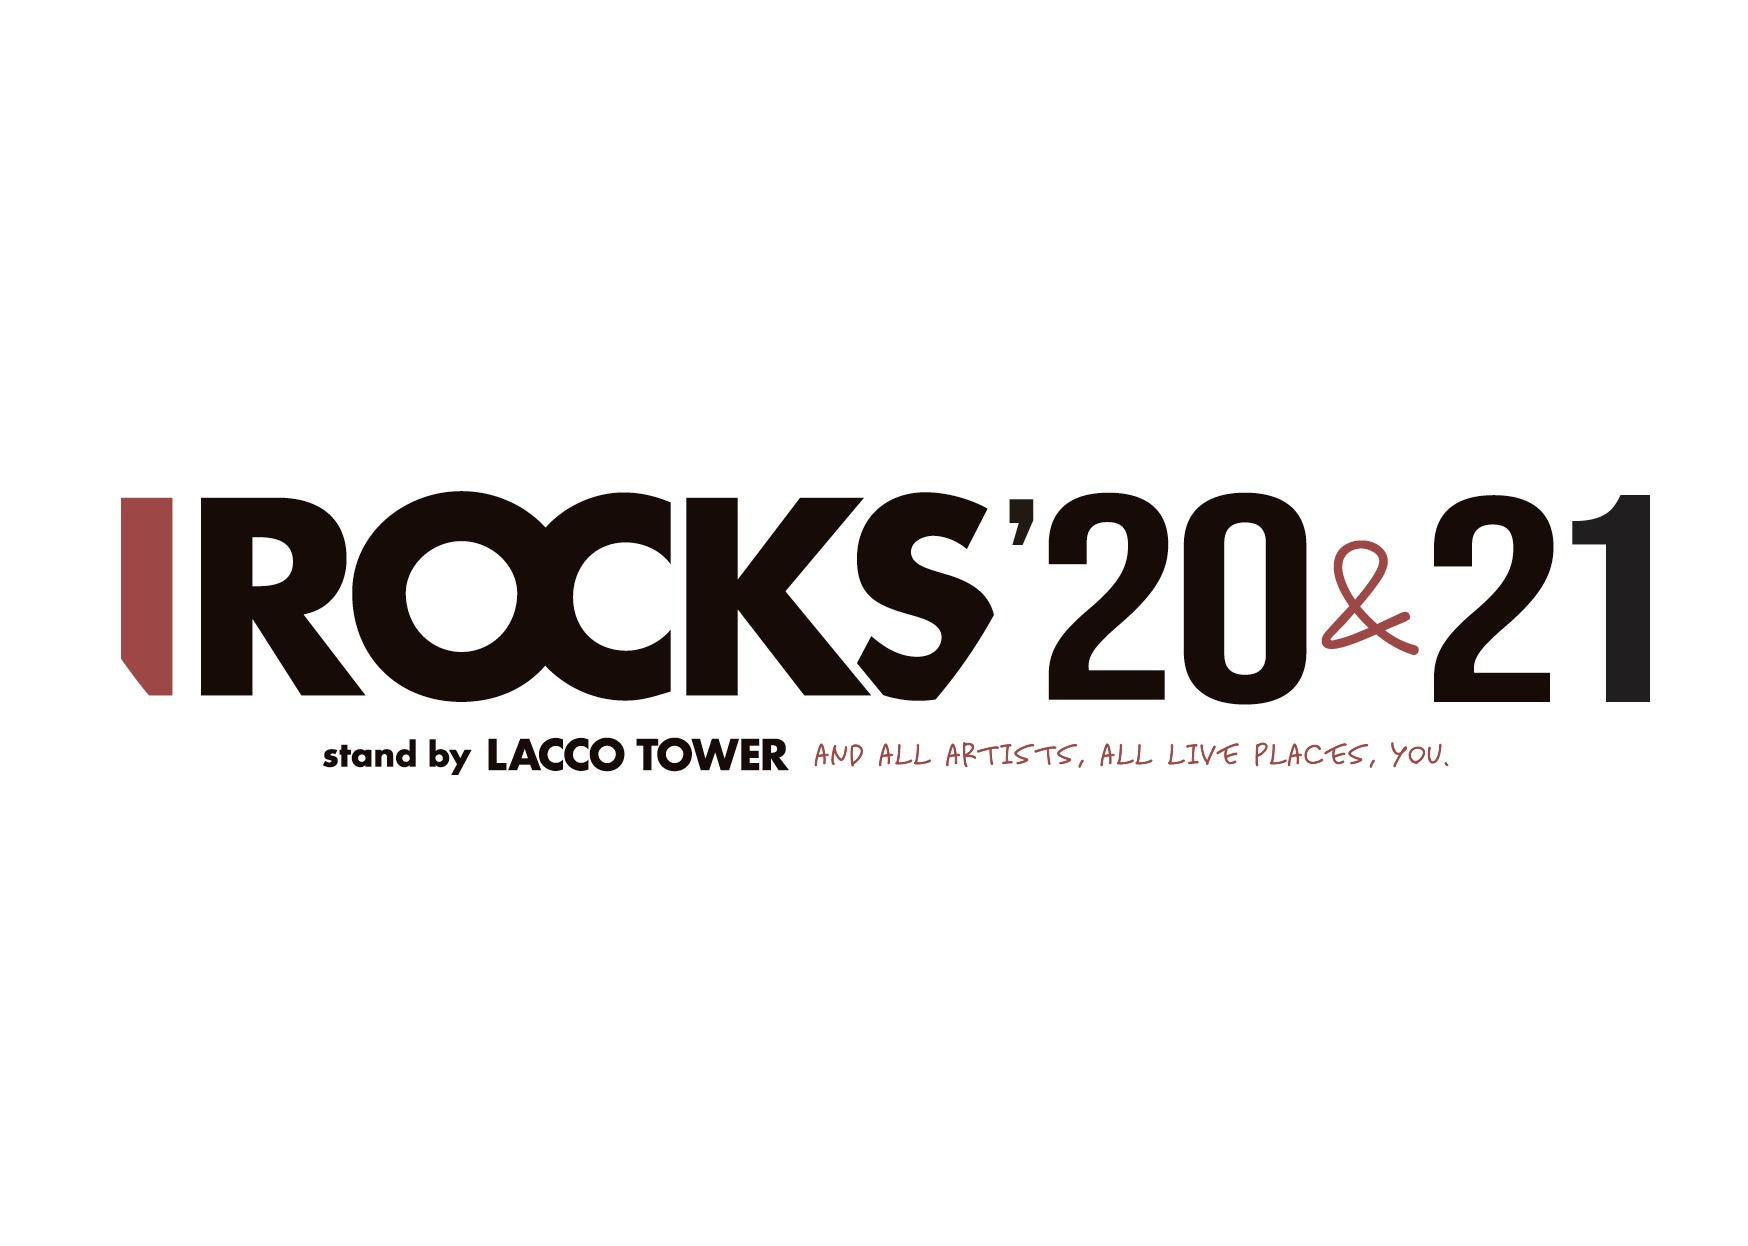 I ROCKS 20&21 stand by LACCO TOWER